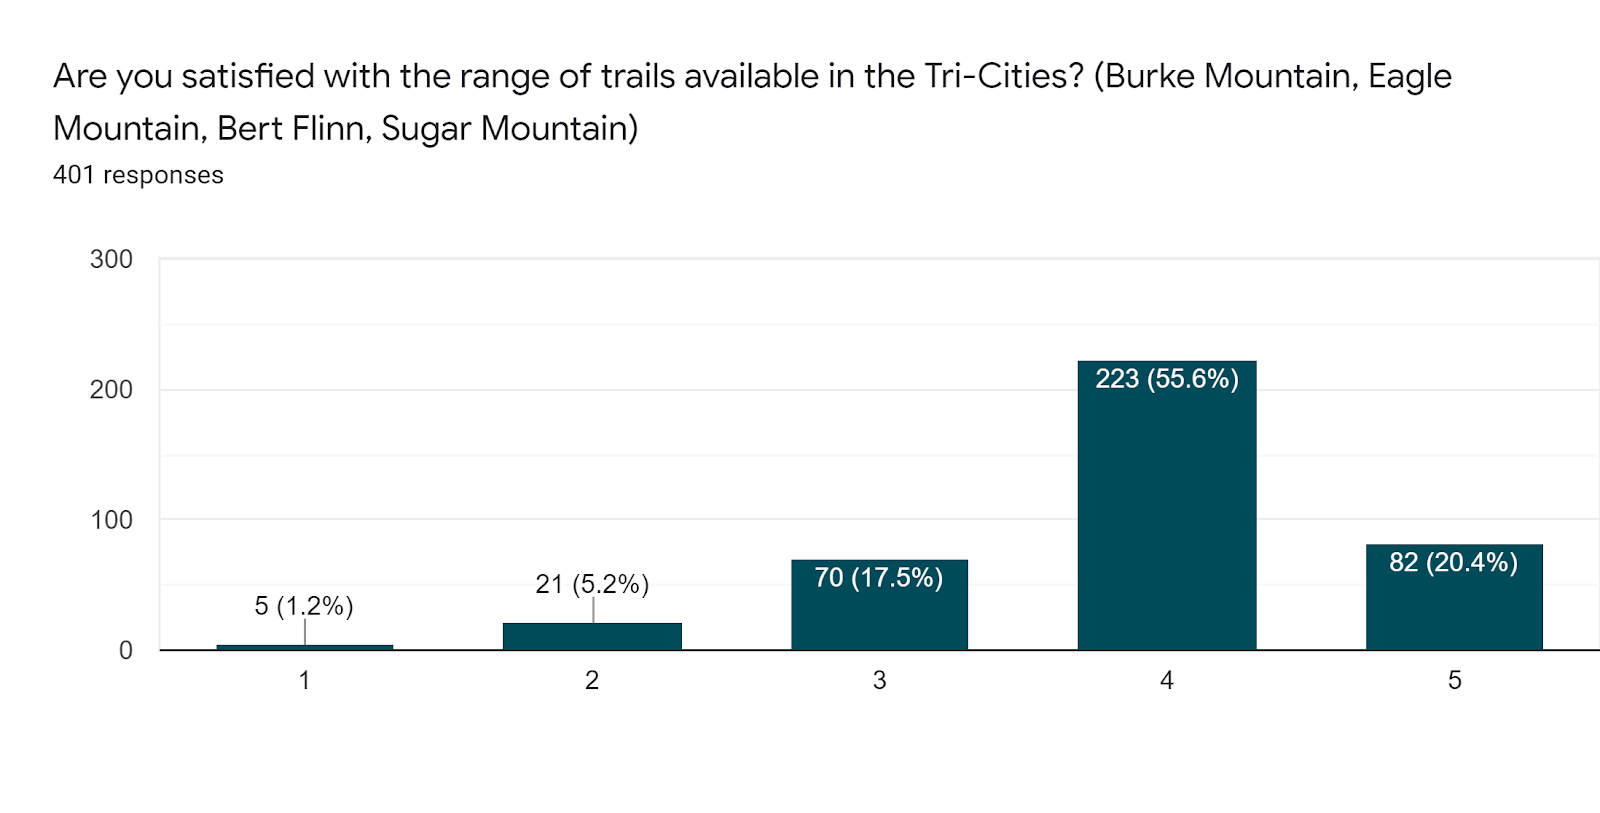 Forms response chart. Question title: Are you satisfied with the range of trails available in the Tri-Cities? (Burke Mountain, Eagle Mountain, Bert Flinn, Sugar Mountain). Number of responses: 401 responses.